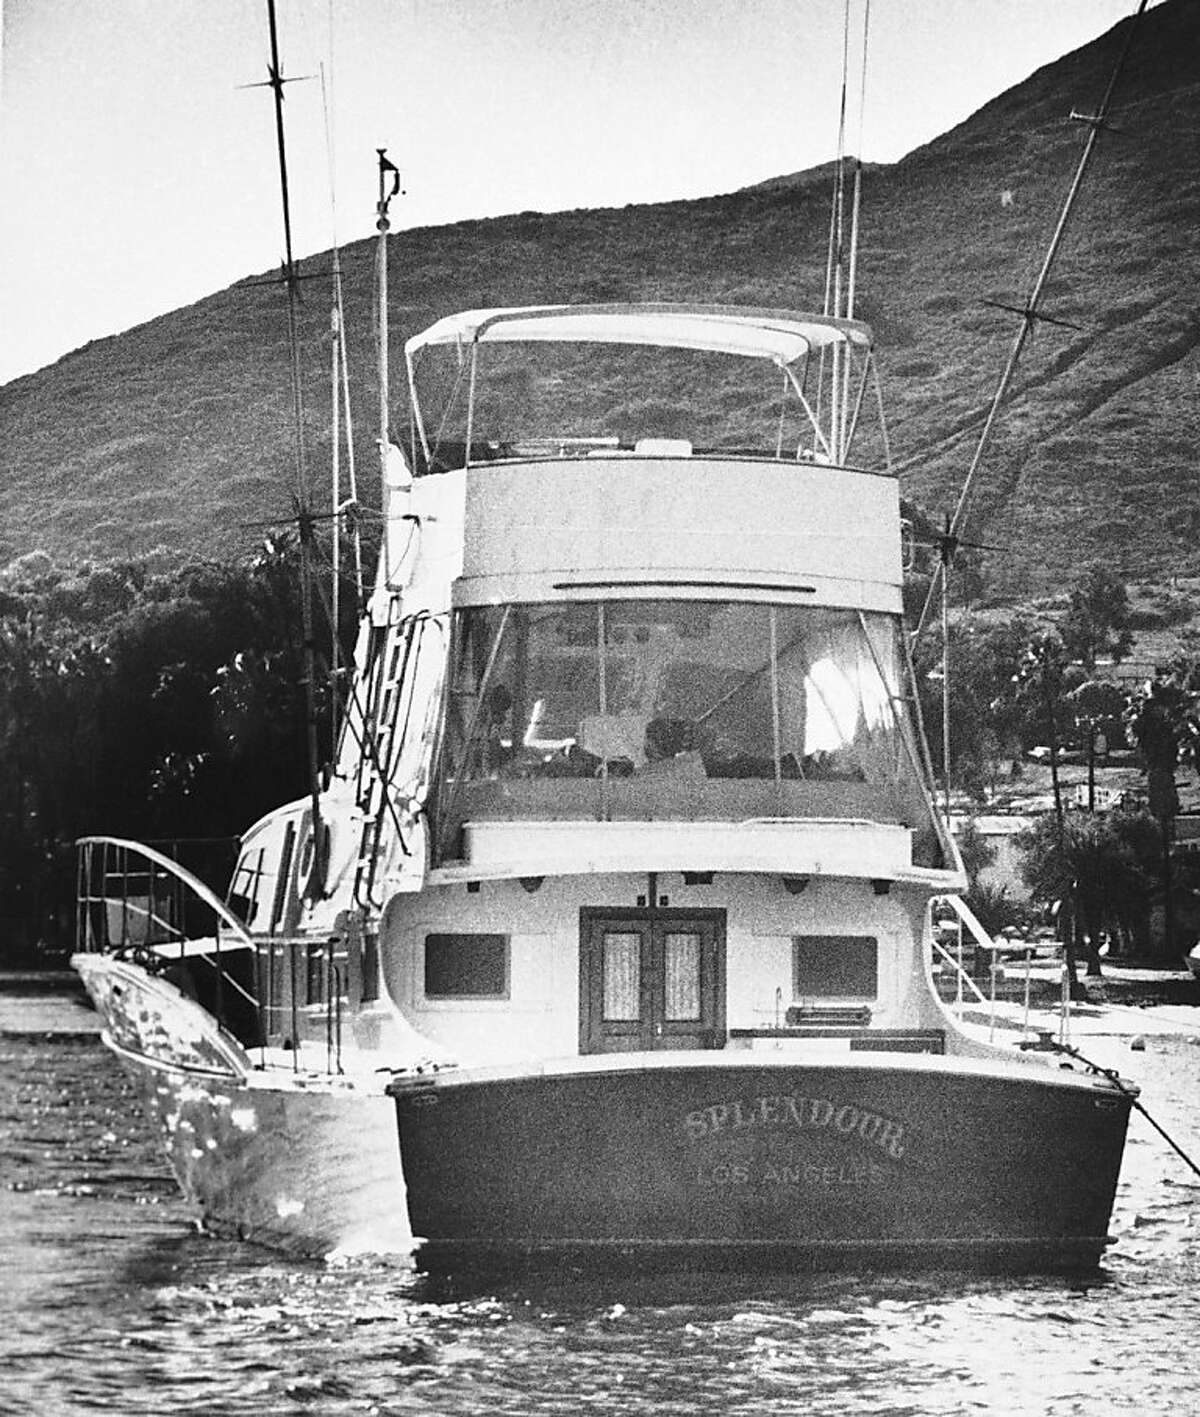 """FILE - The 55-foot yacht """"Splendour,"""" belonging to actor Robert Wagner and his wife, actress Natalie Wood, sits in the waters off Catalina Island in Santa Catalina, Calif., near the site where Harbor Patrol personnel and lifeguards discovered the body of Wood, an apparent drowning victim, Nov. 29, 1981. Los Angeles sheriff's homicide detectives are taking another look at Wood's 1981 drowning death based on new information, officials announced Thursday, Nov. 17, 2011. (AP Photo/Harrington, File) Ran on: 11-19-2011 Woods final hours were spent on the Splendour."""